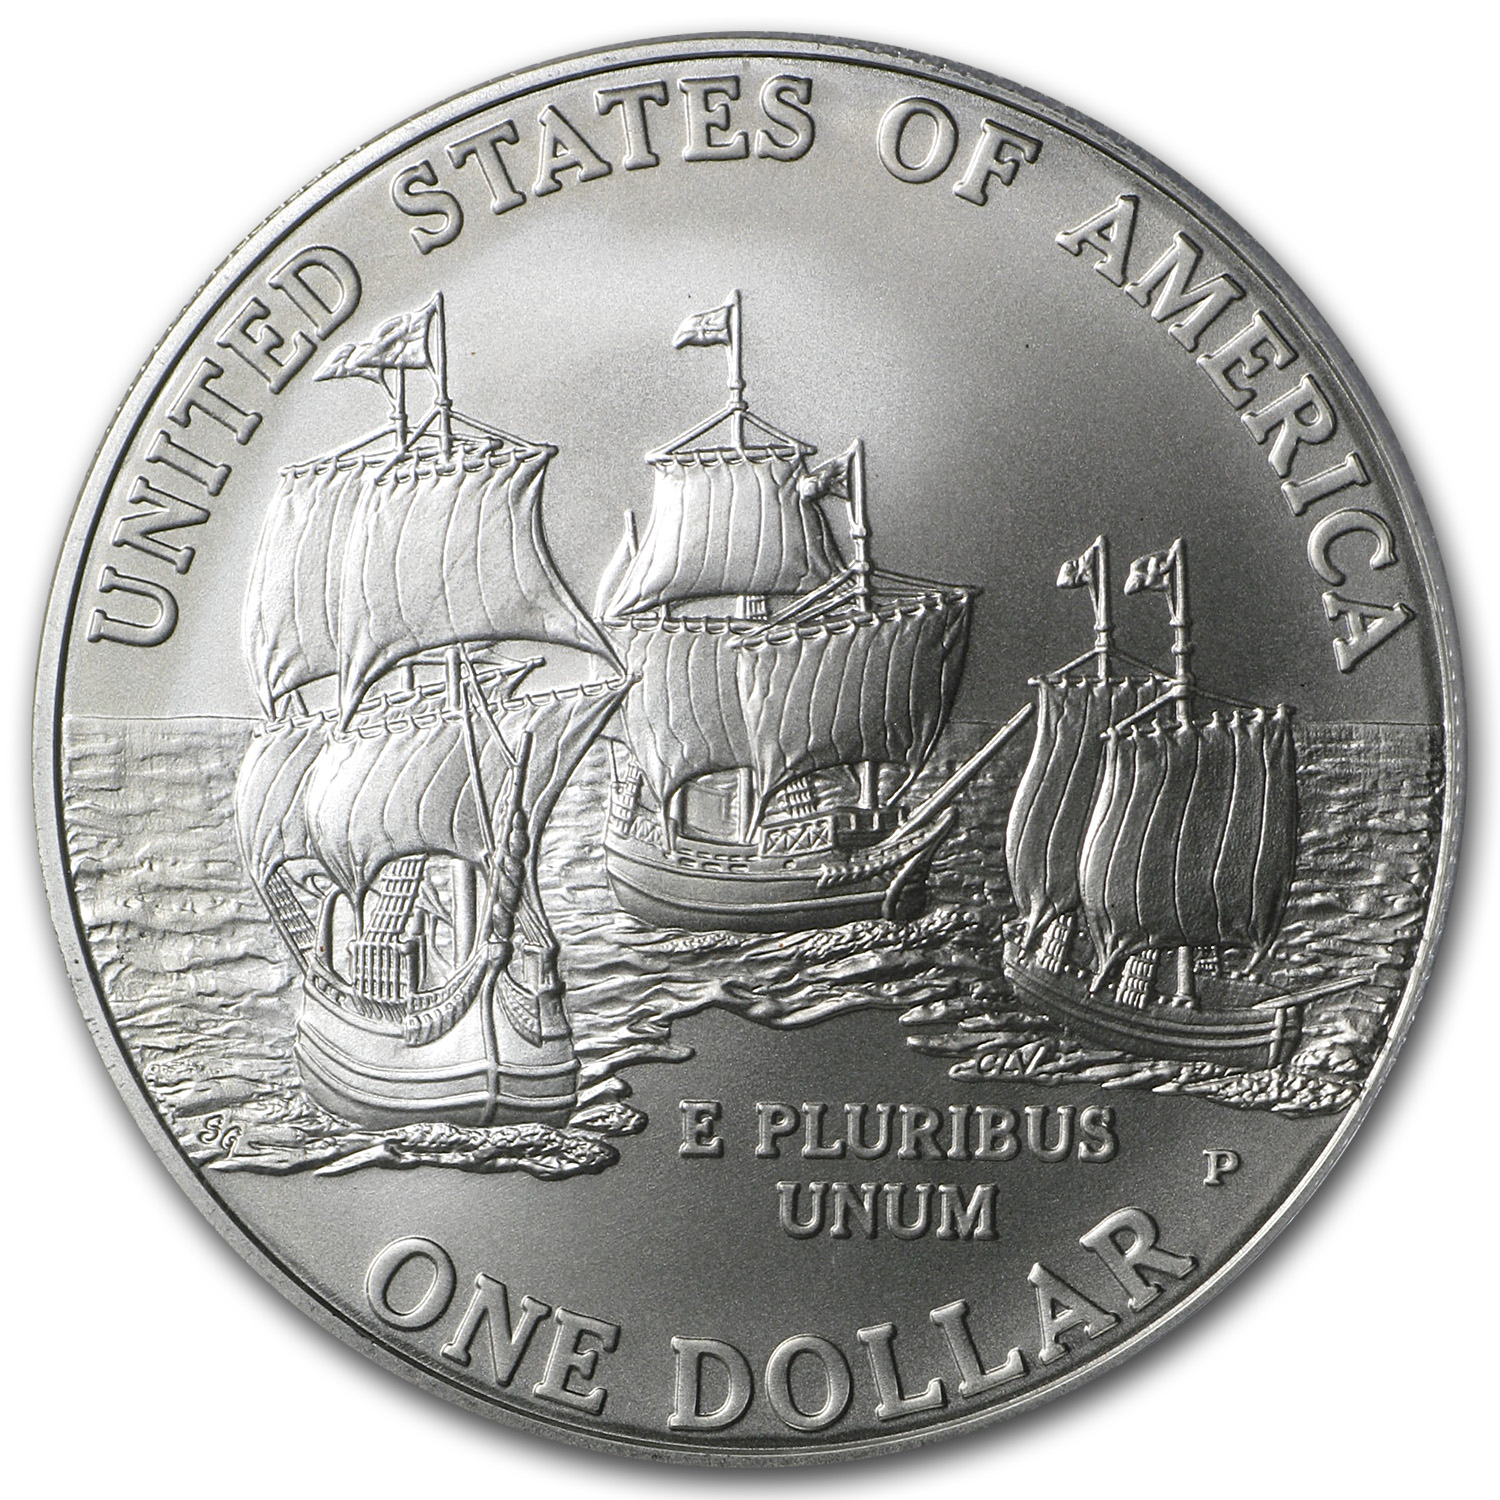 2007-P Jamestown 400th Anniv. $1 Silver Commemorative MS-70 PCGS